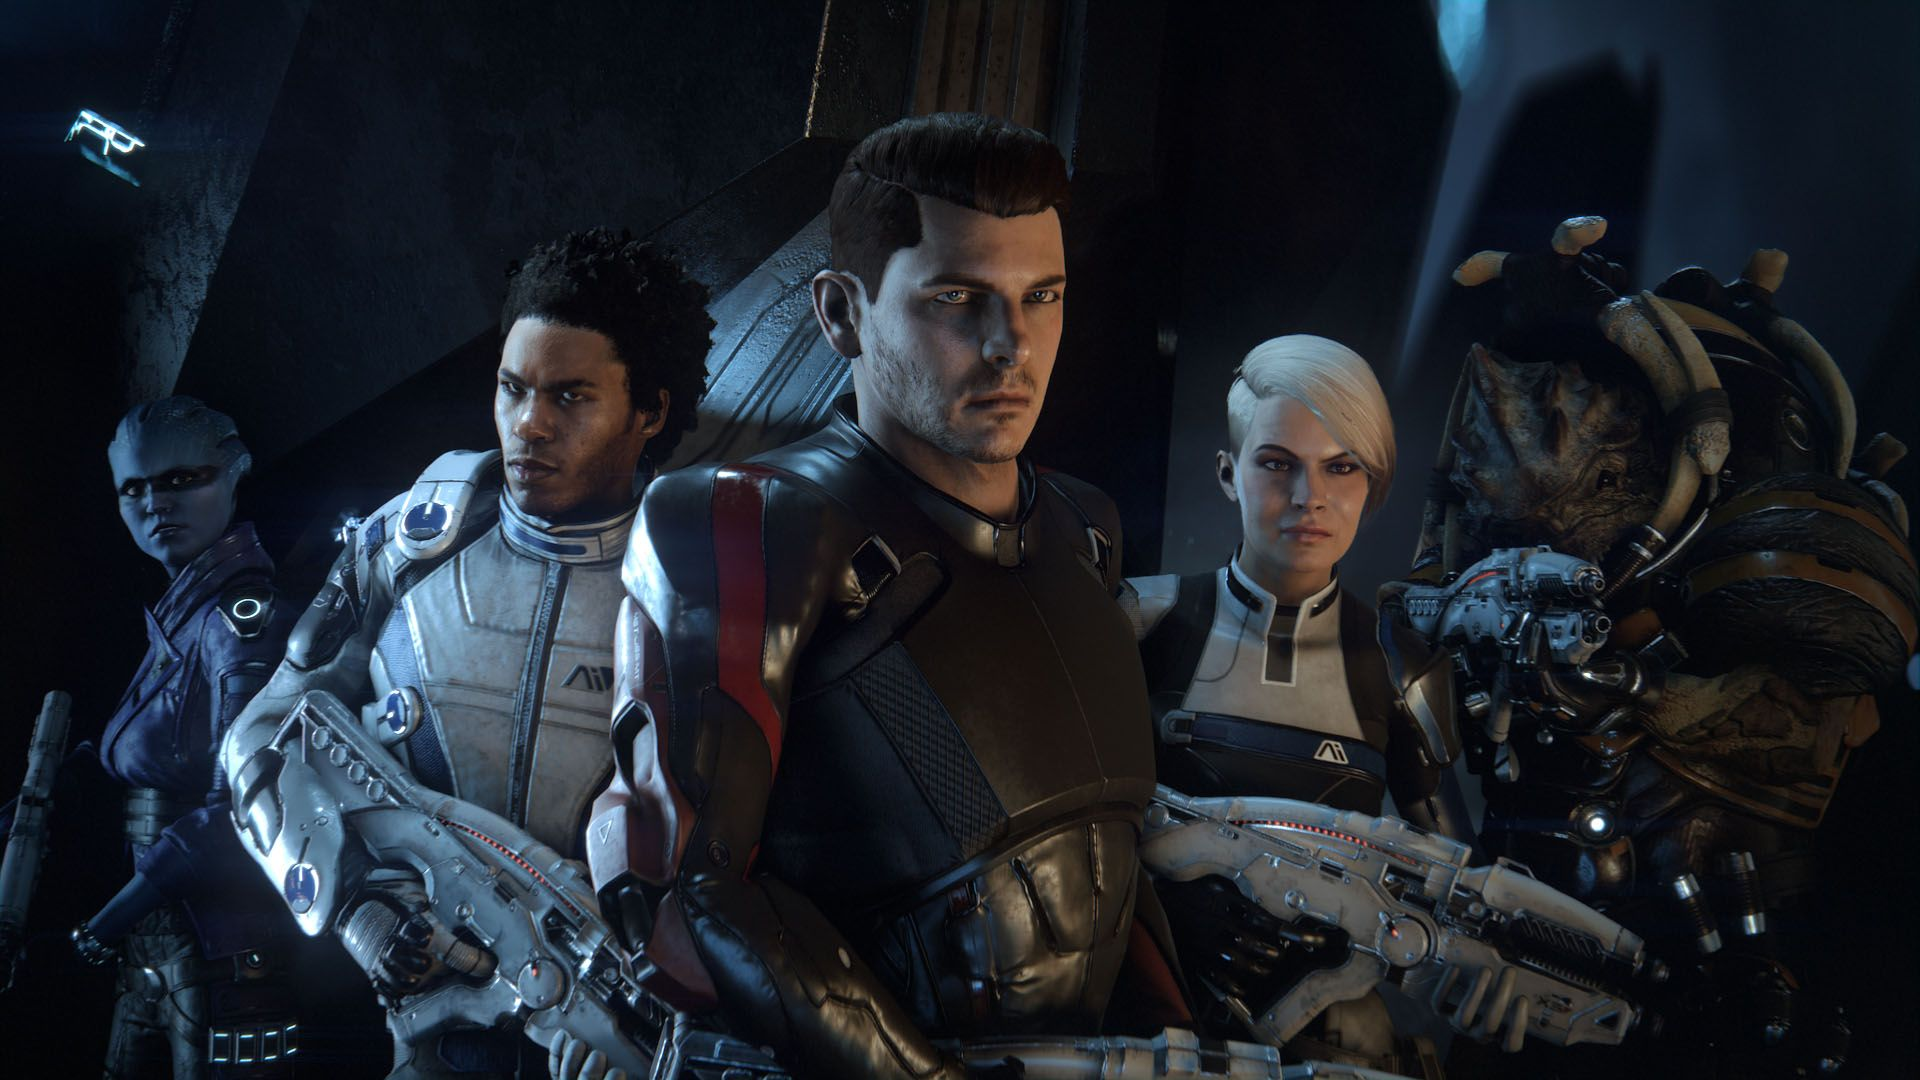 download mass effect andromeda super digital deluxe edition singlelink iso cracked by cpy conspir4cy full version multi 8 language free for pc